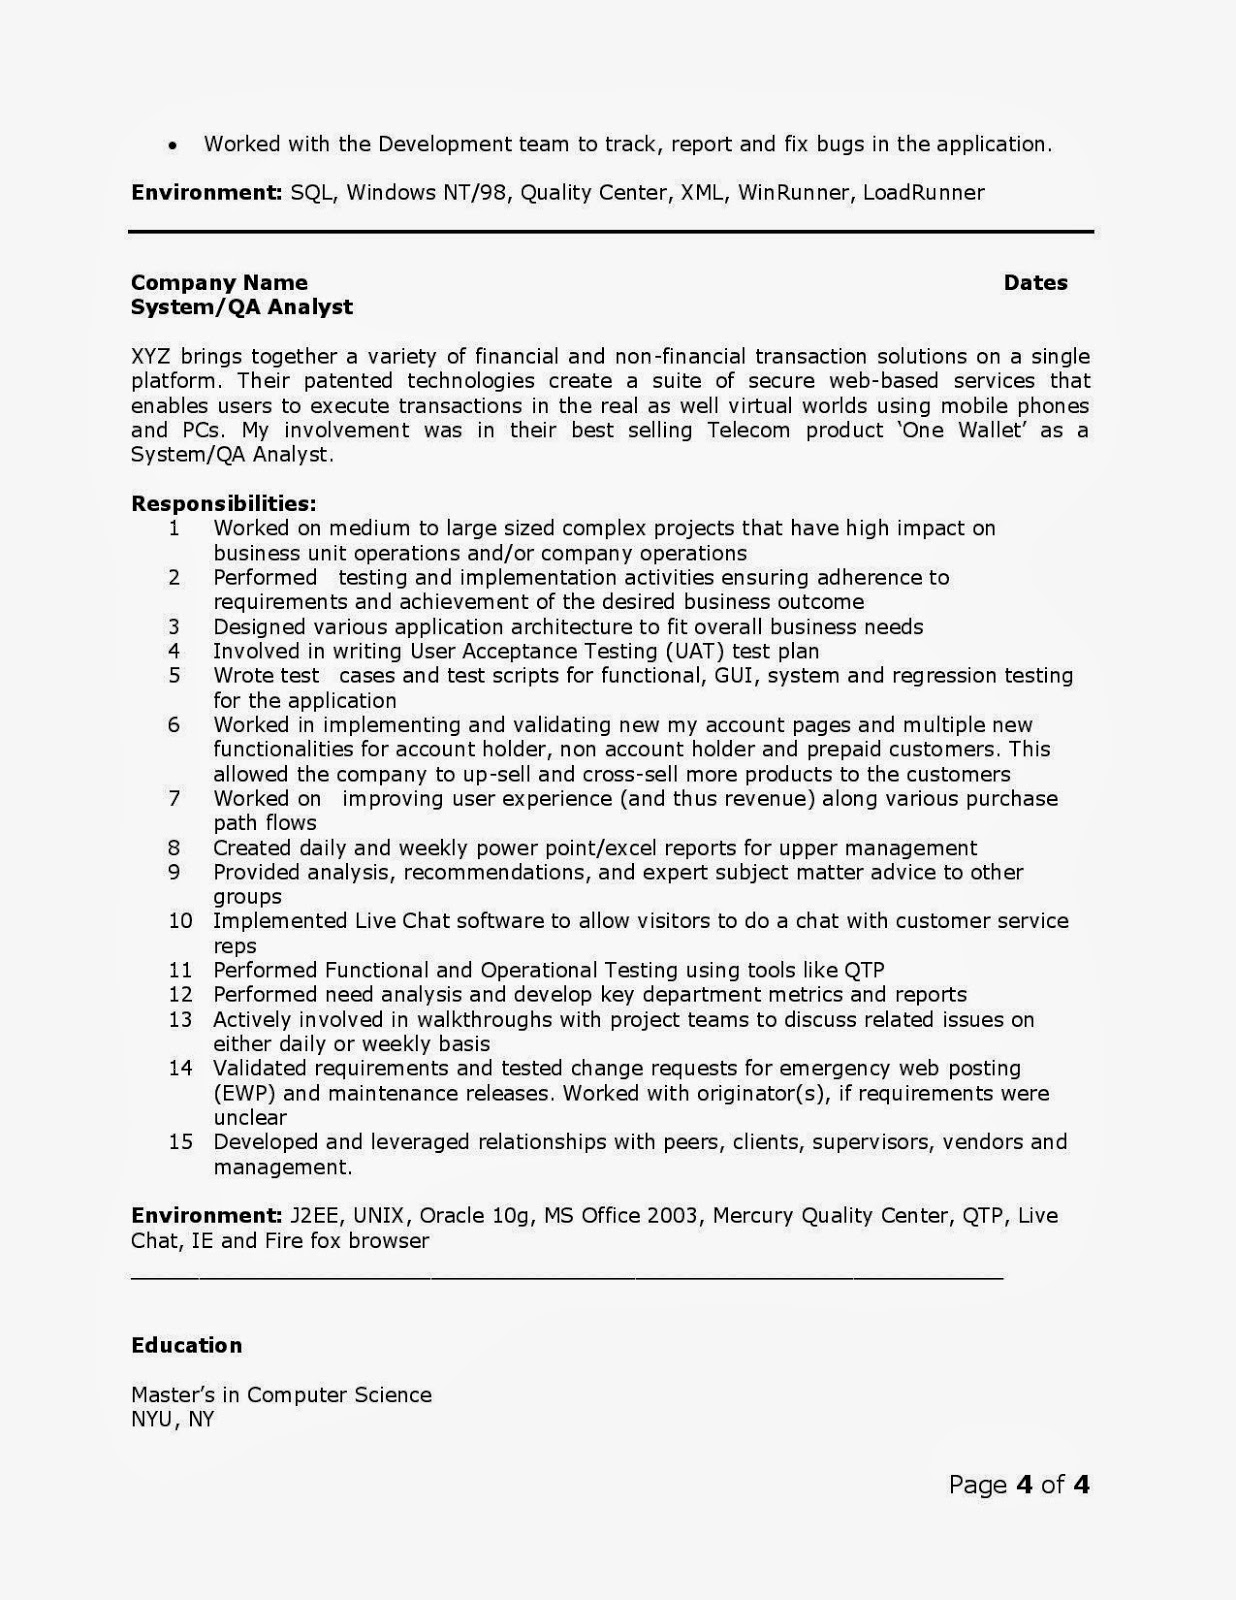 qa analyst resume - Ideal.vistalist.co